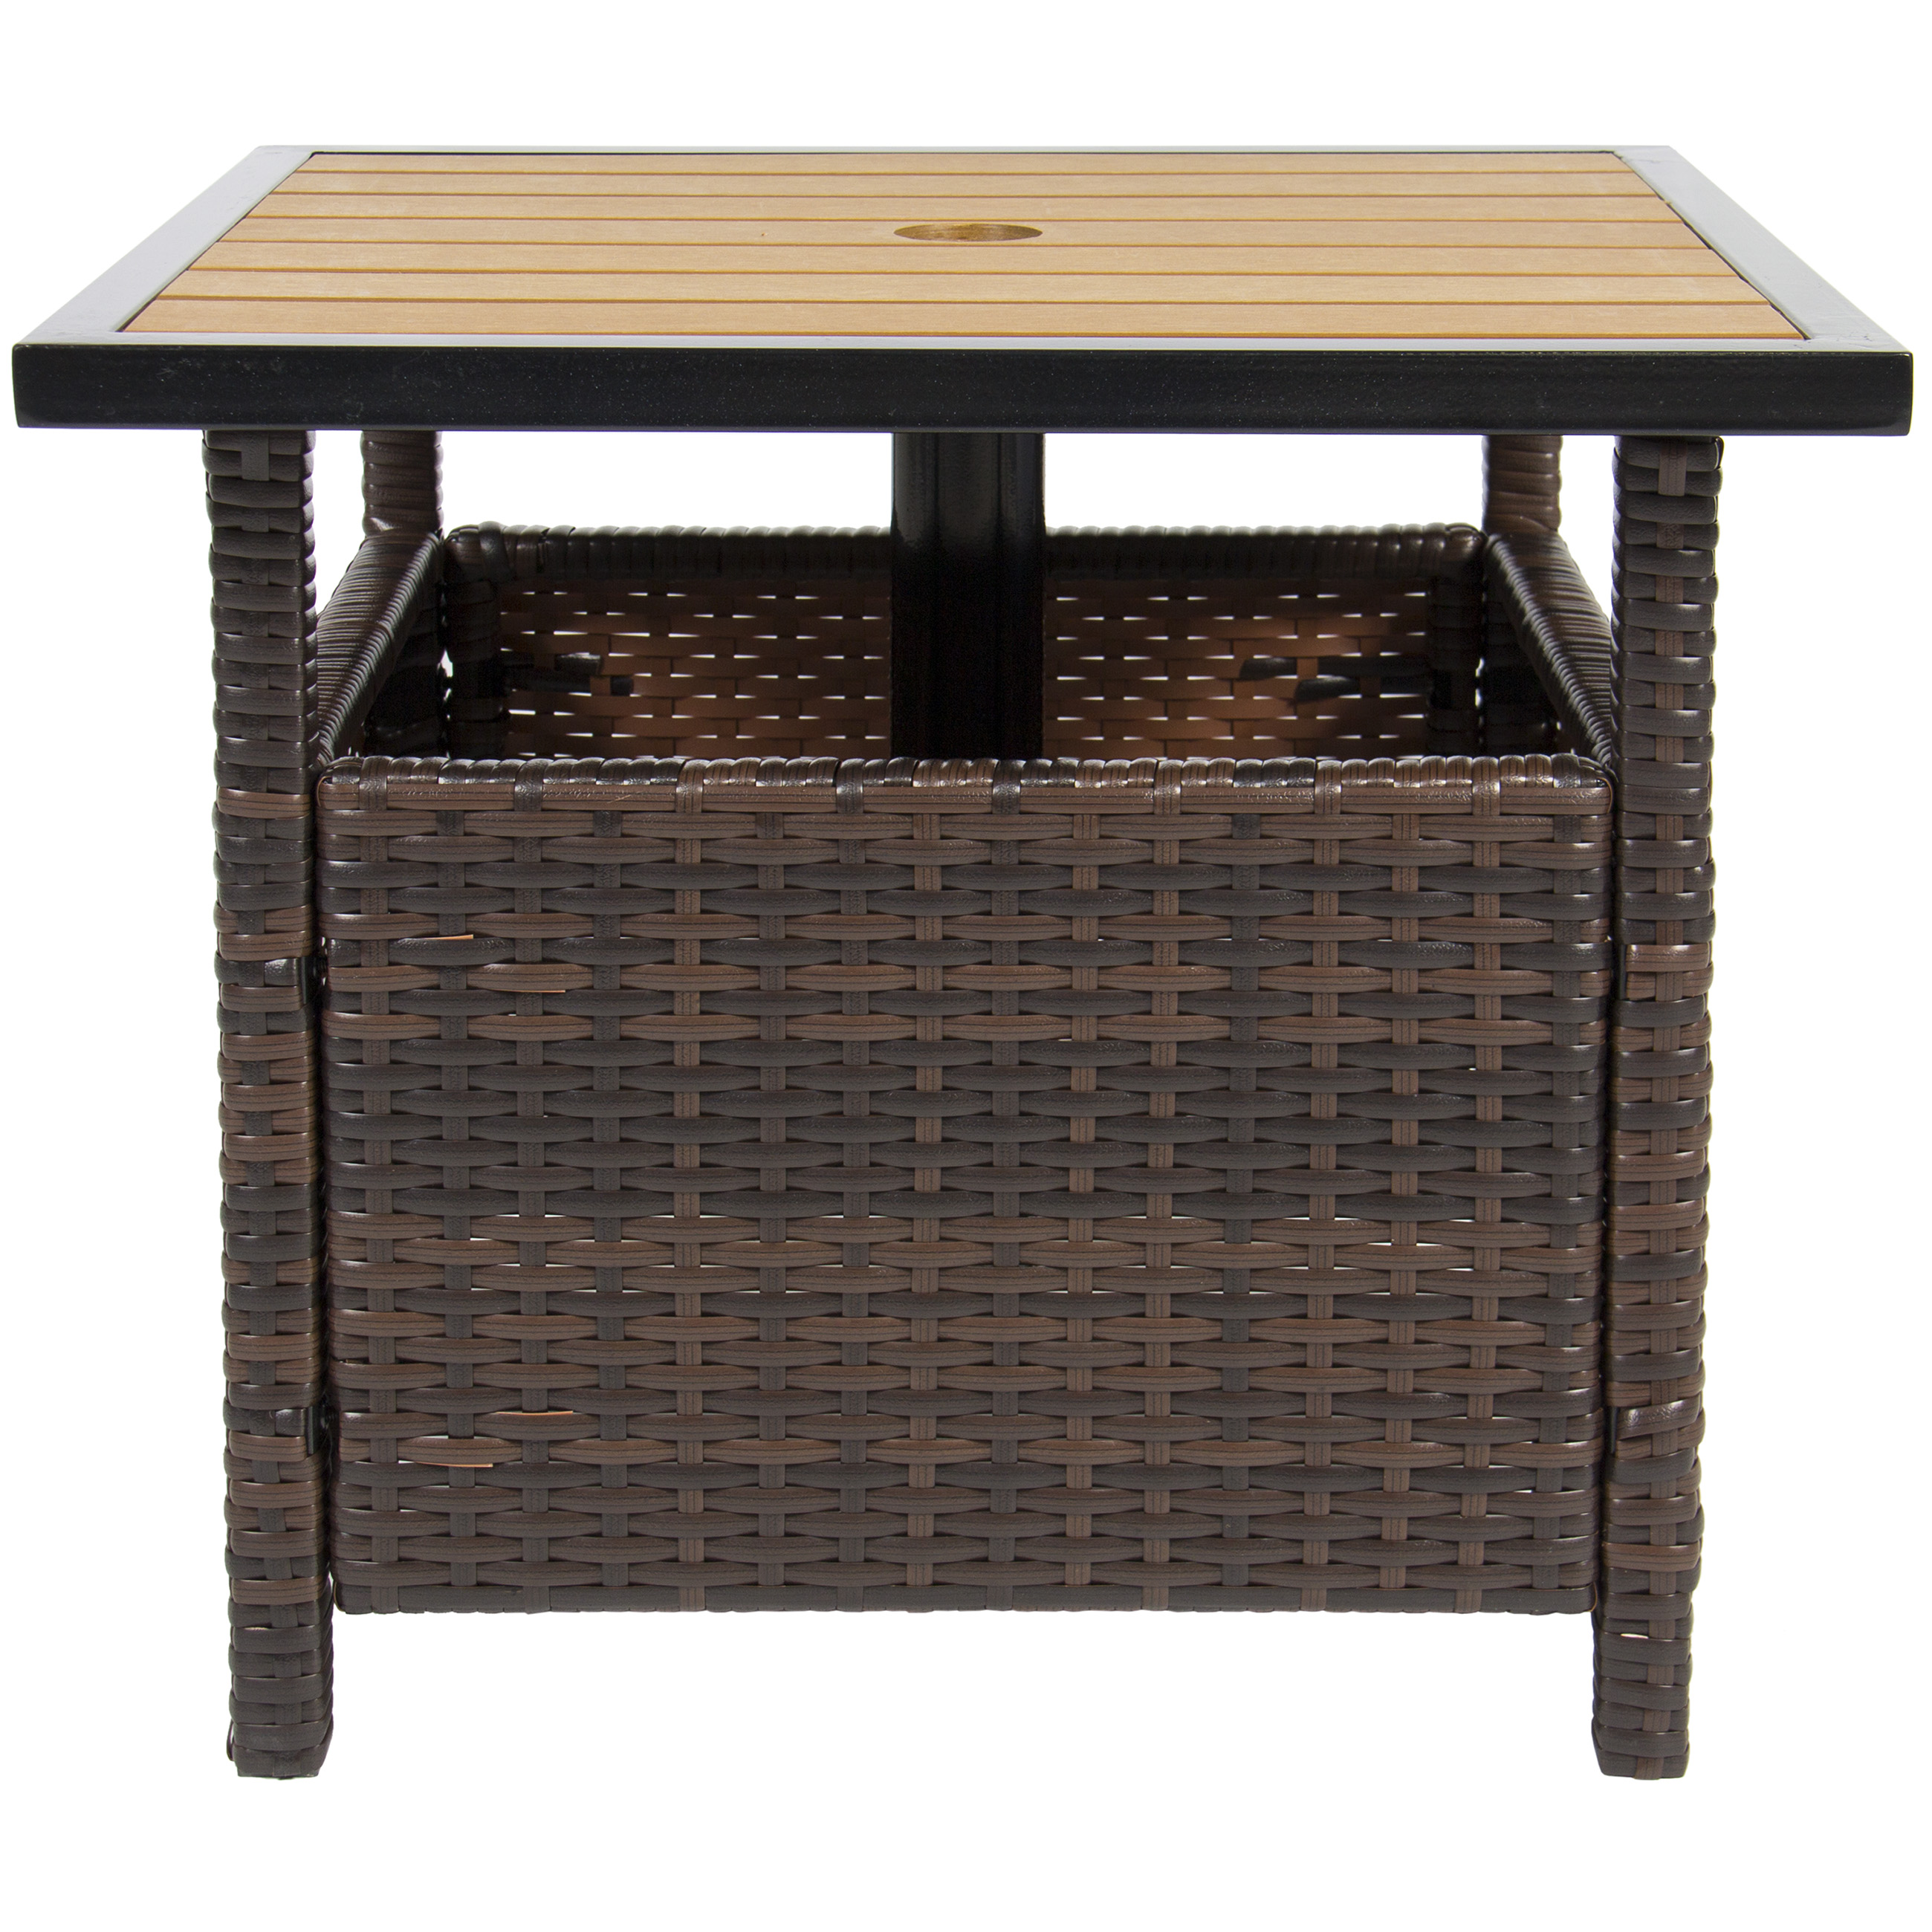 Best choice products wicker patio umbrella stand table with umbrella hole outdoor furniture for garden pool deck w uv resistant frame brown walmart